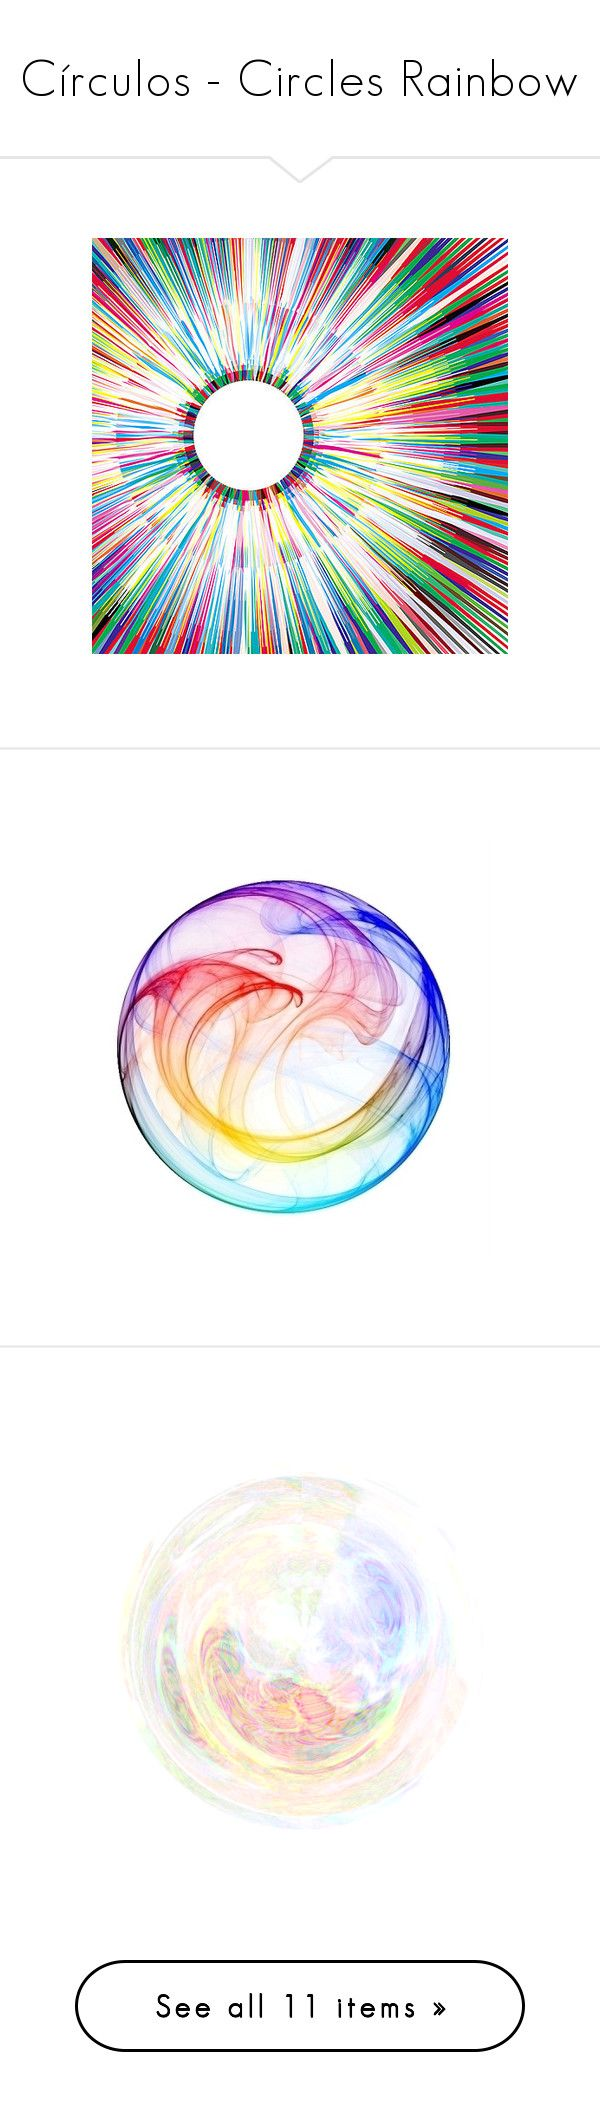 """""""Círculos - Circles Rainbow"""" by rafakeka ❤ liked on Polyvore featuring backgrounds, rainbow, textures, art, colorful, embellishment, detail, circles, effects and extras"""